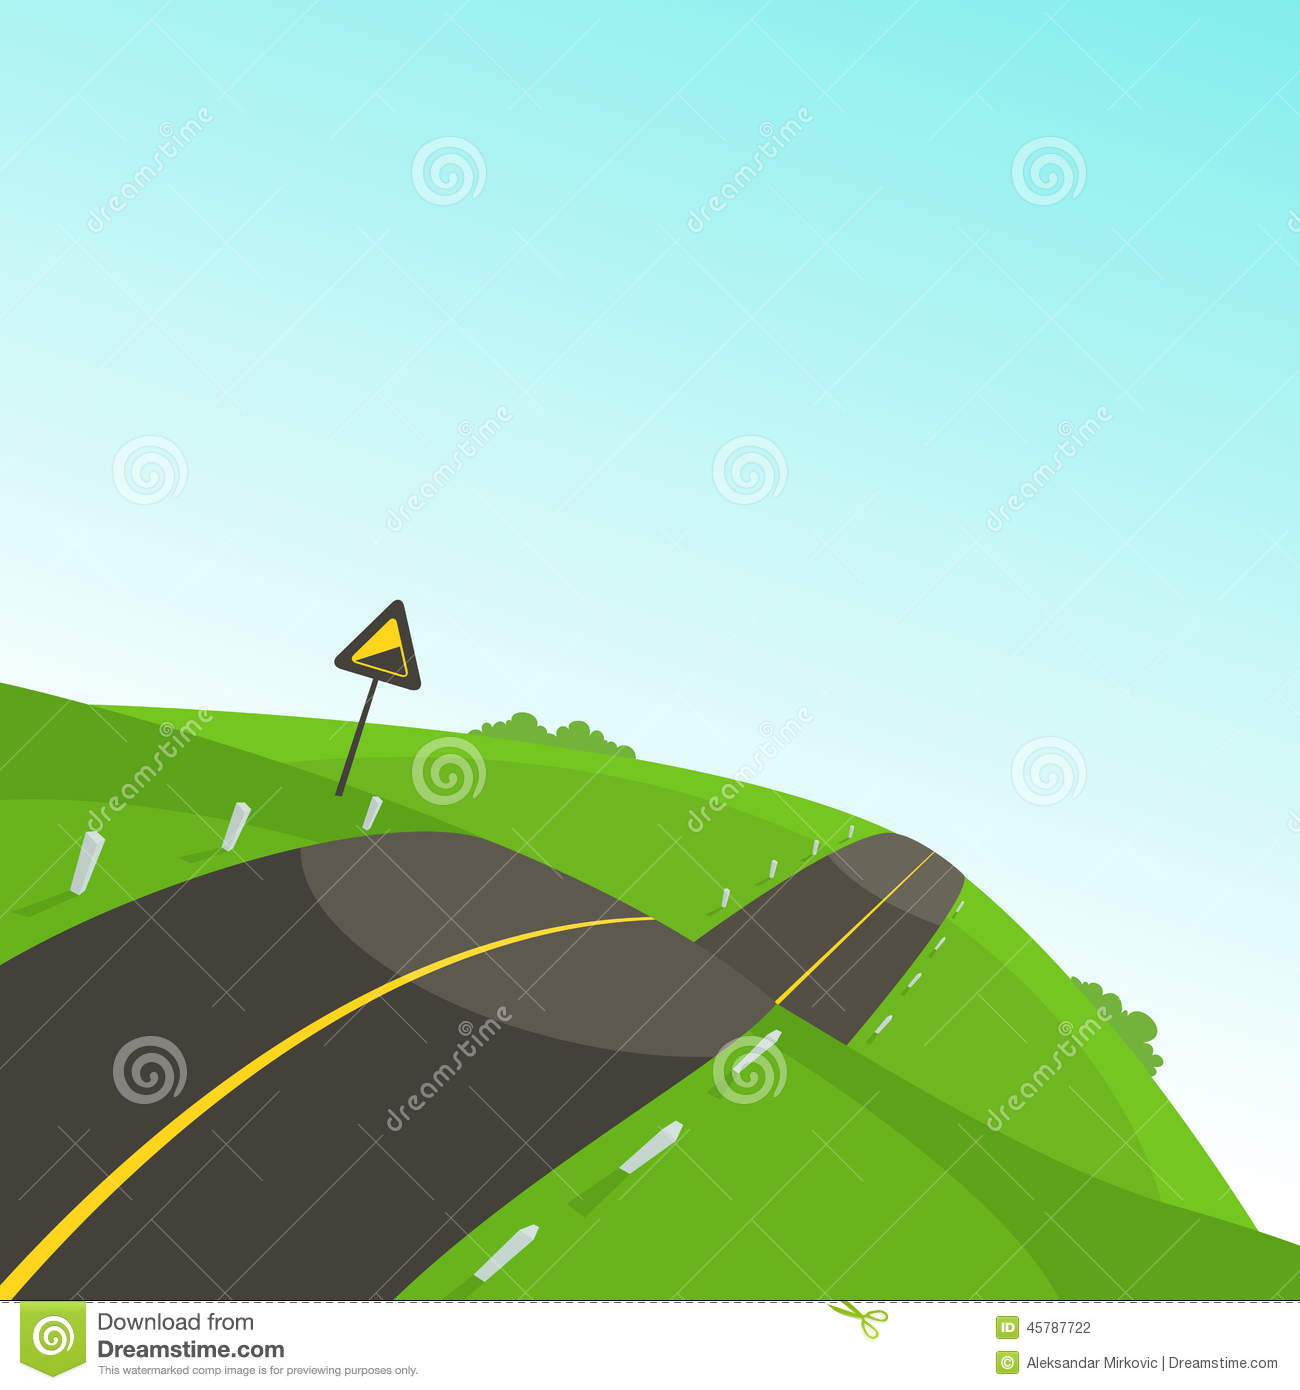 Steep Slope Road Traffic Sign Stock Photos, Images, & Pictures.